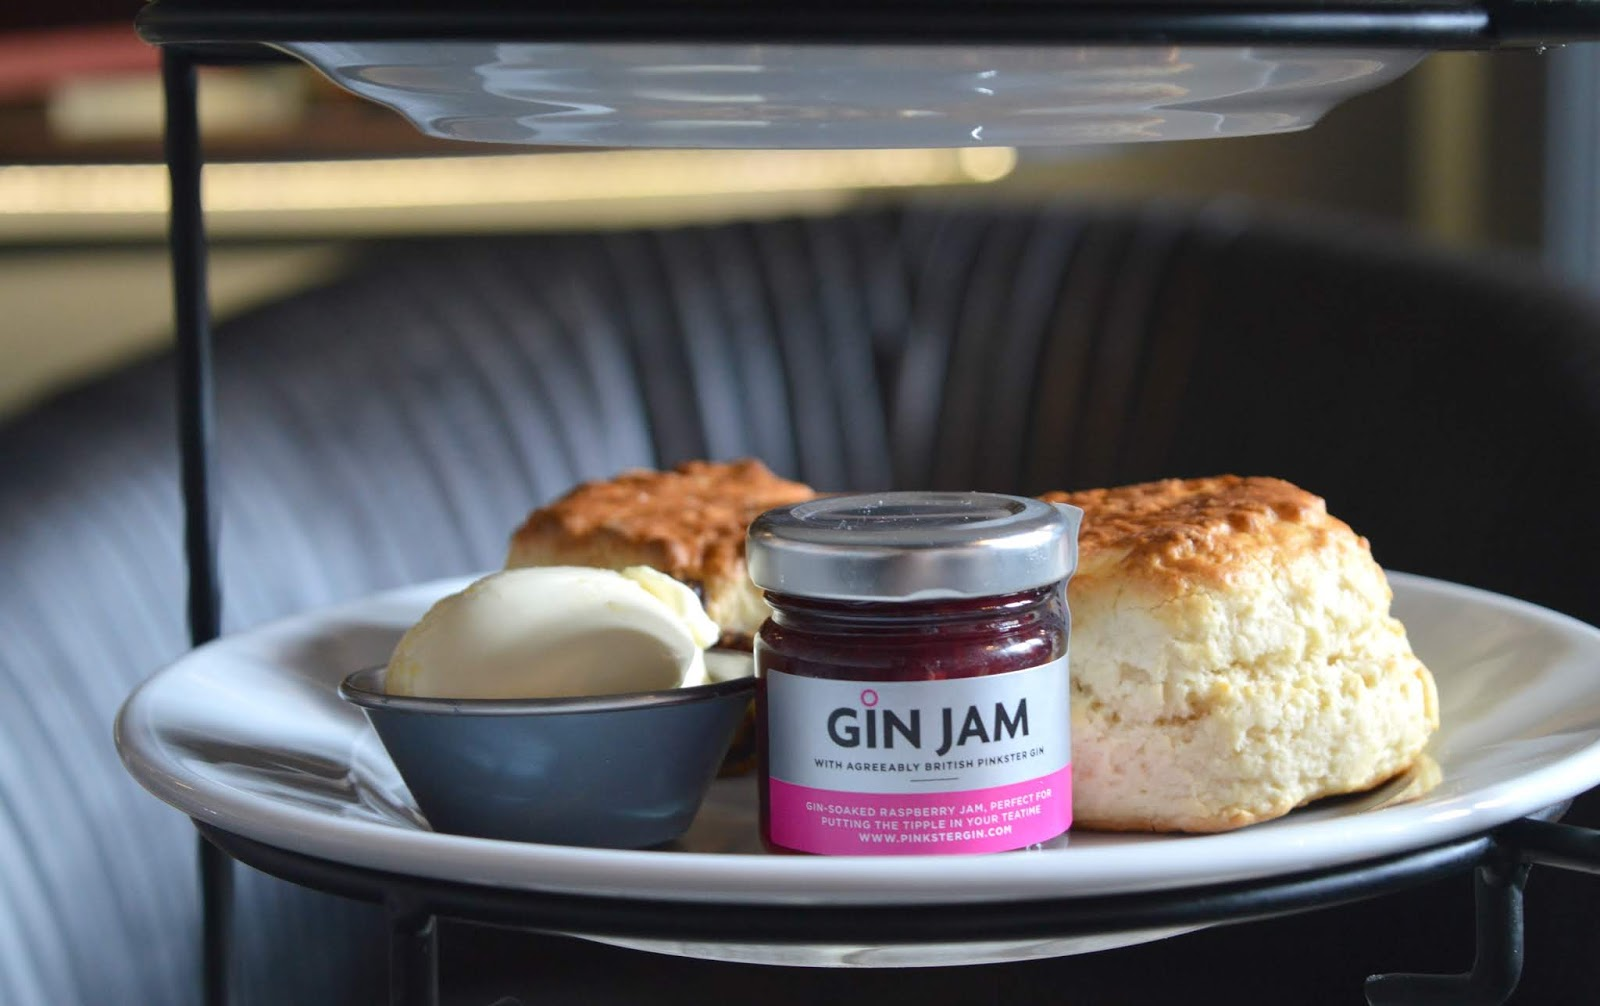 Pinkster Gin Jam Afternoon Tea Union Rooms, Newcastle